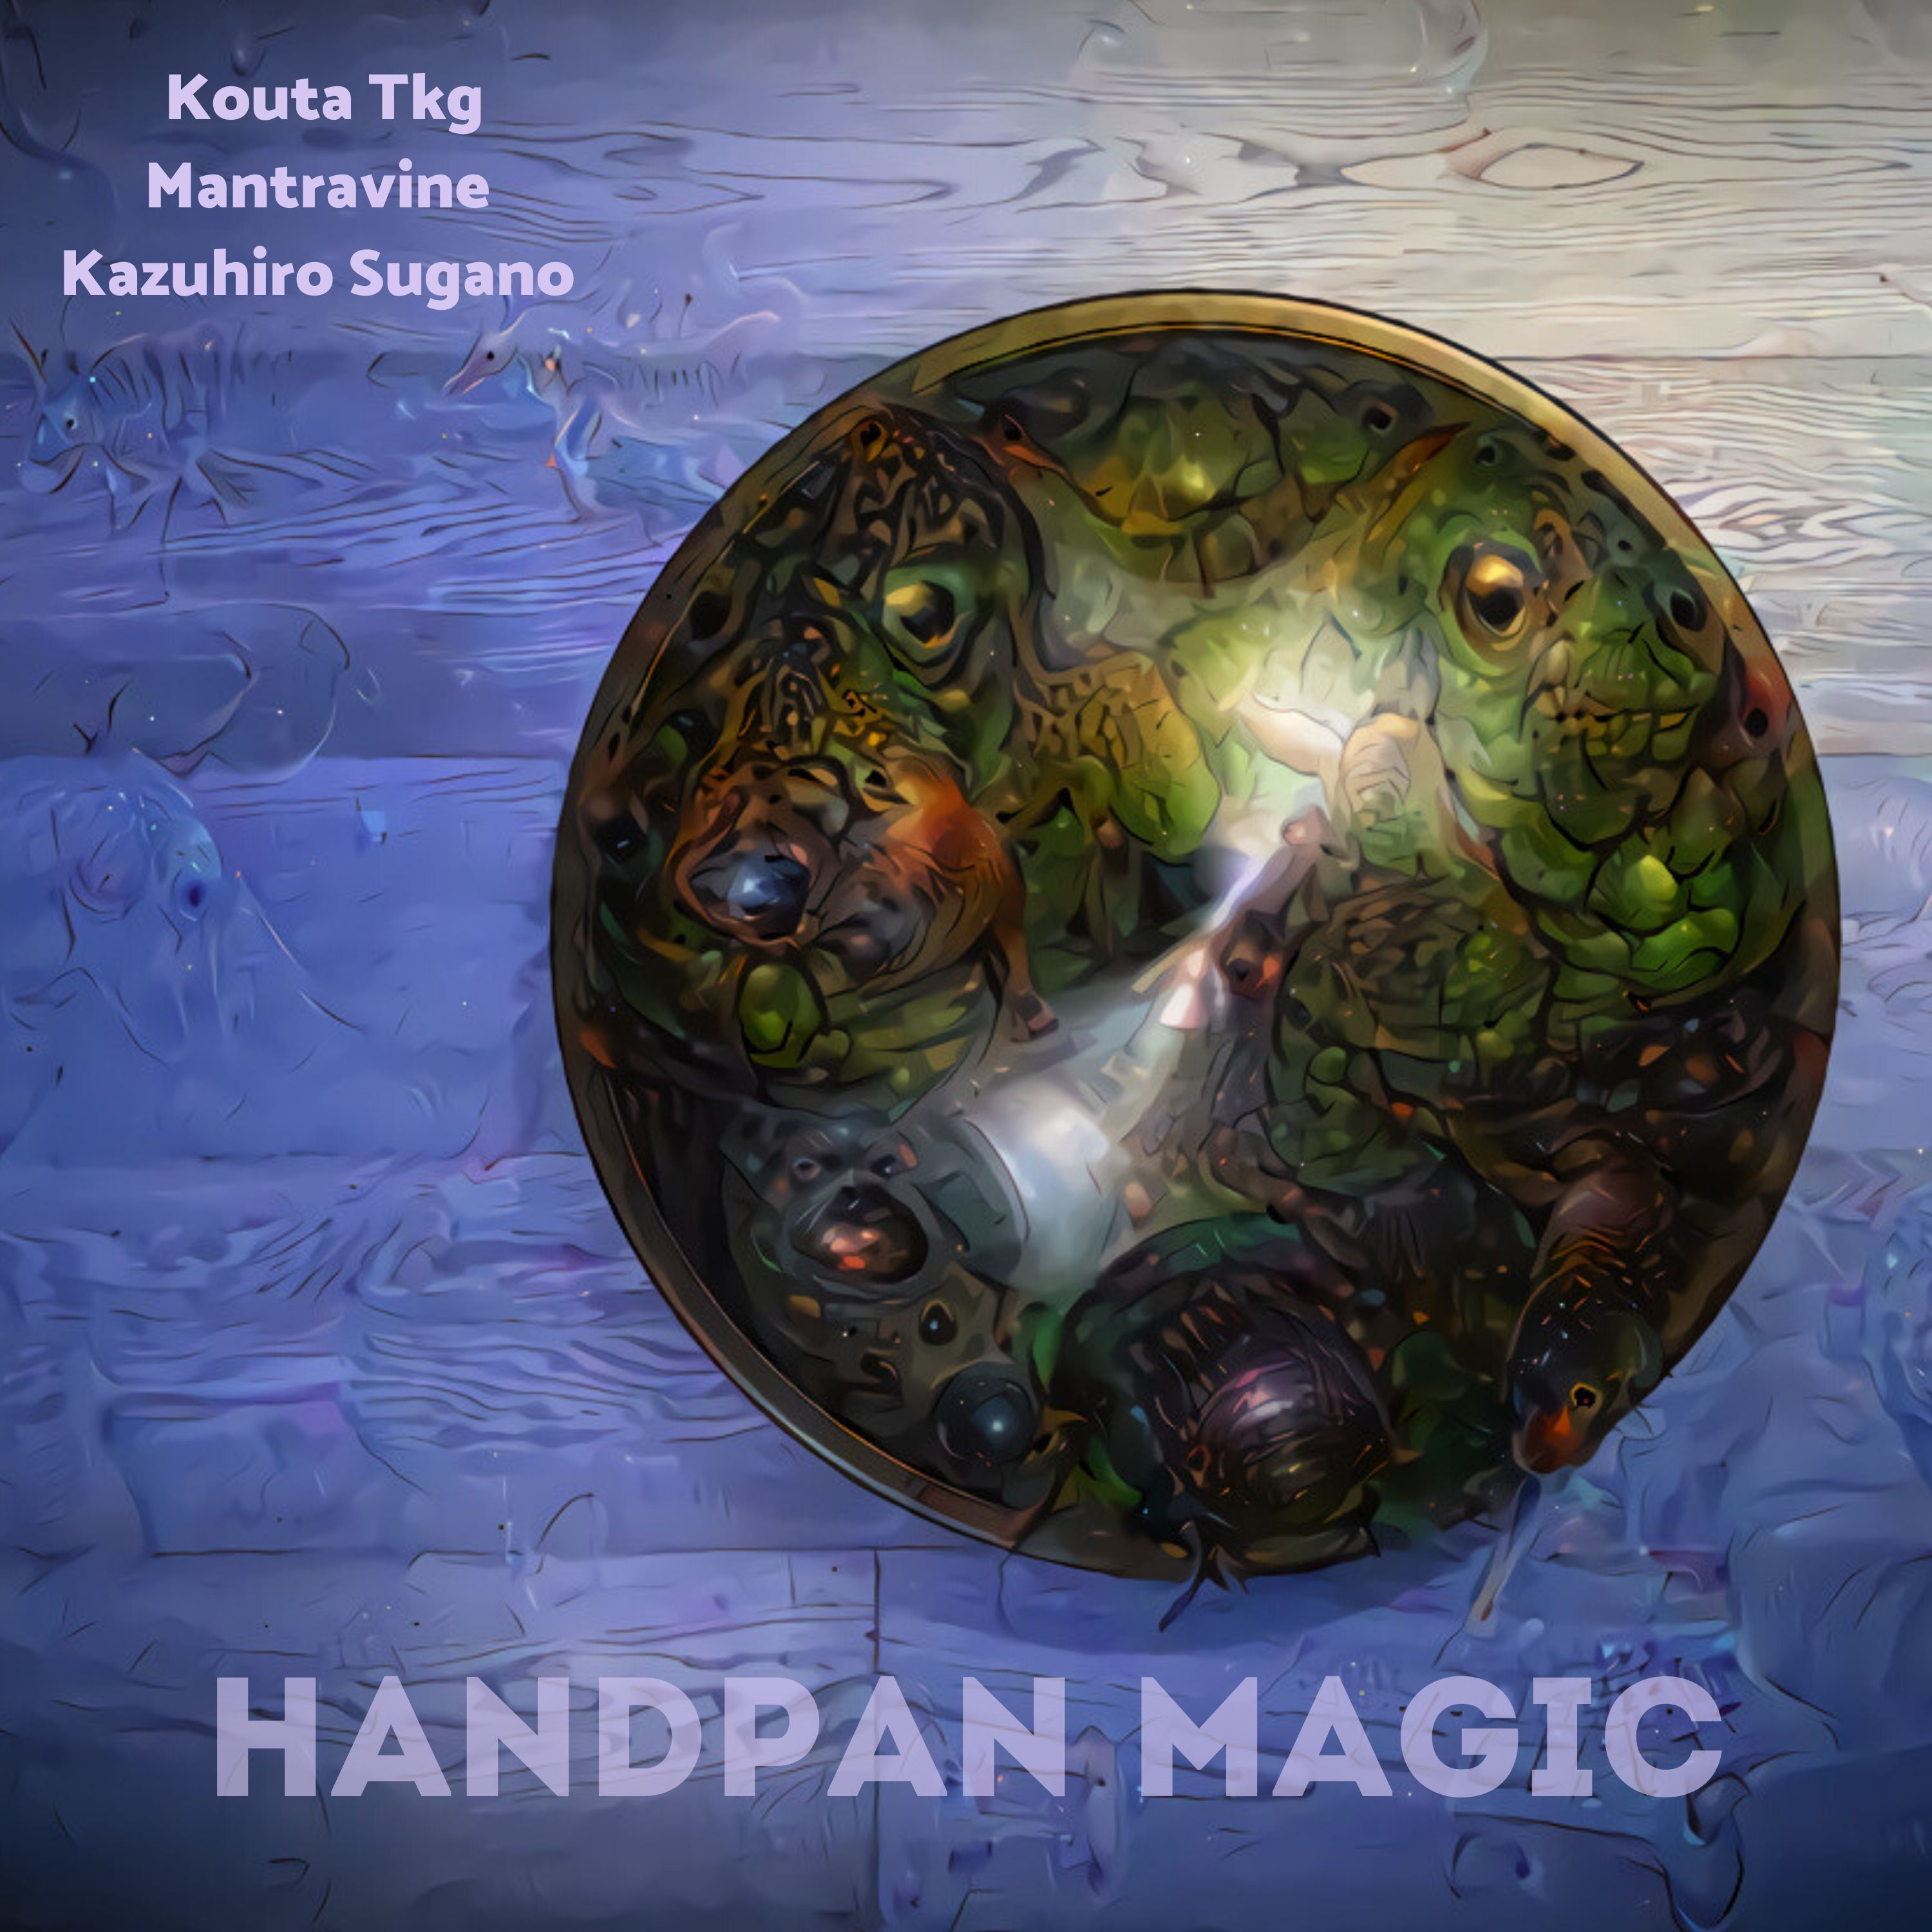 Handpan magic